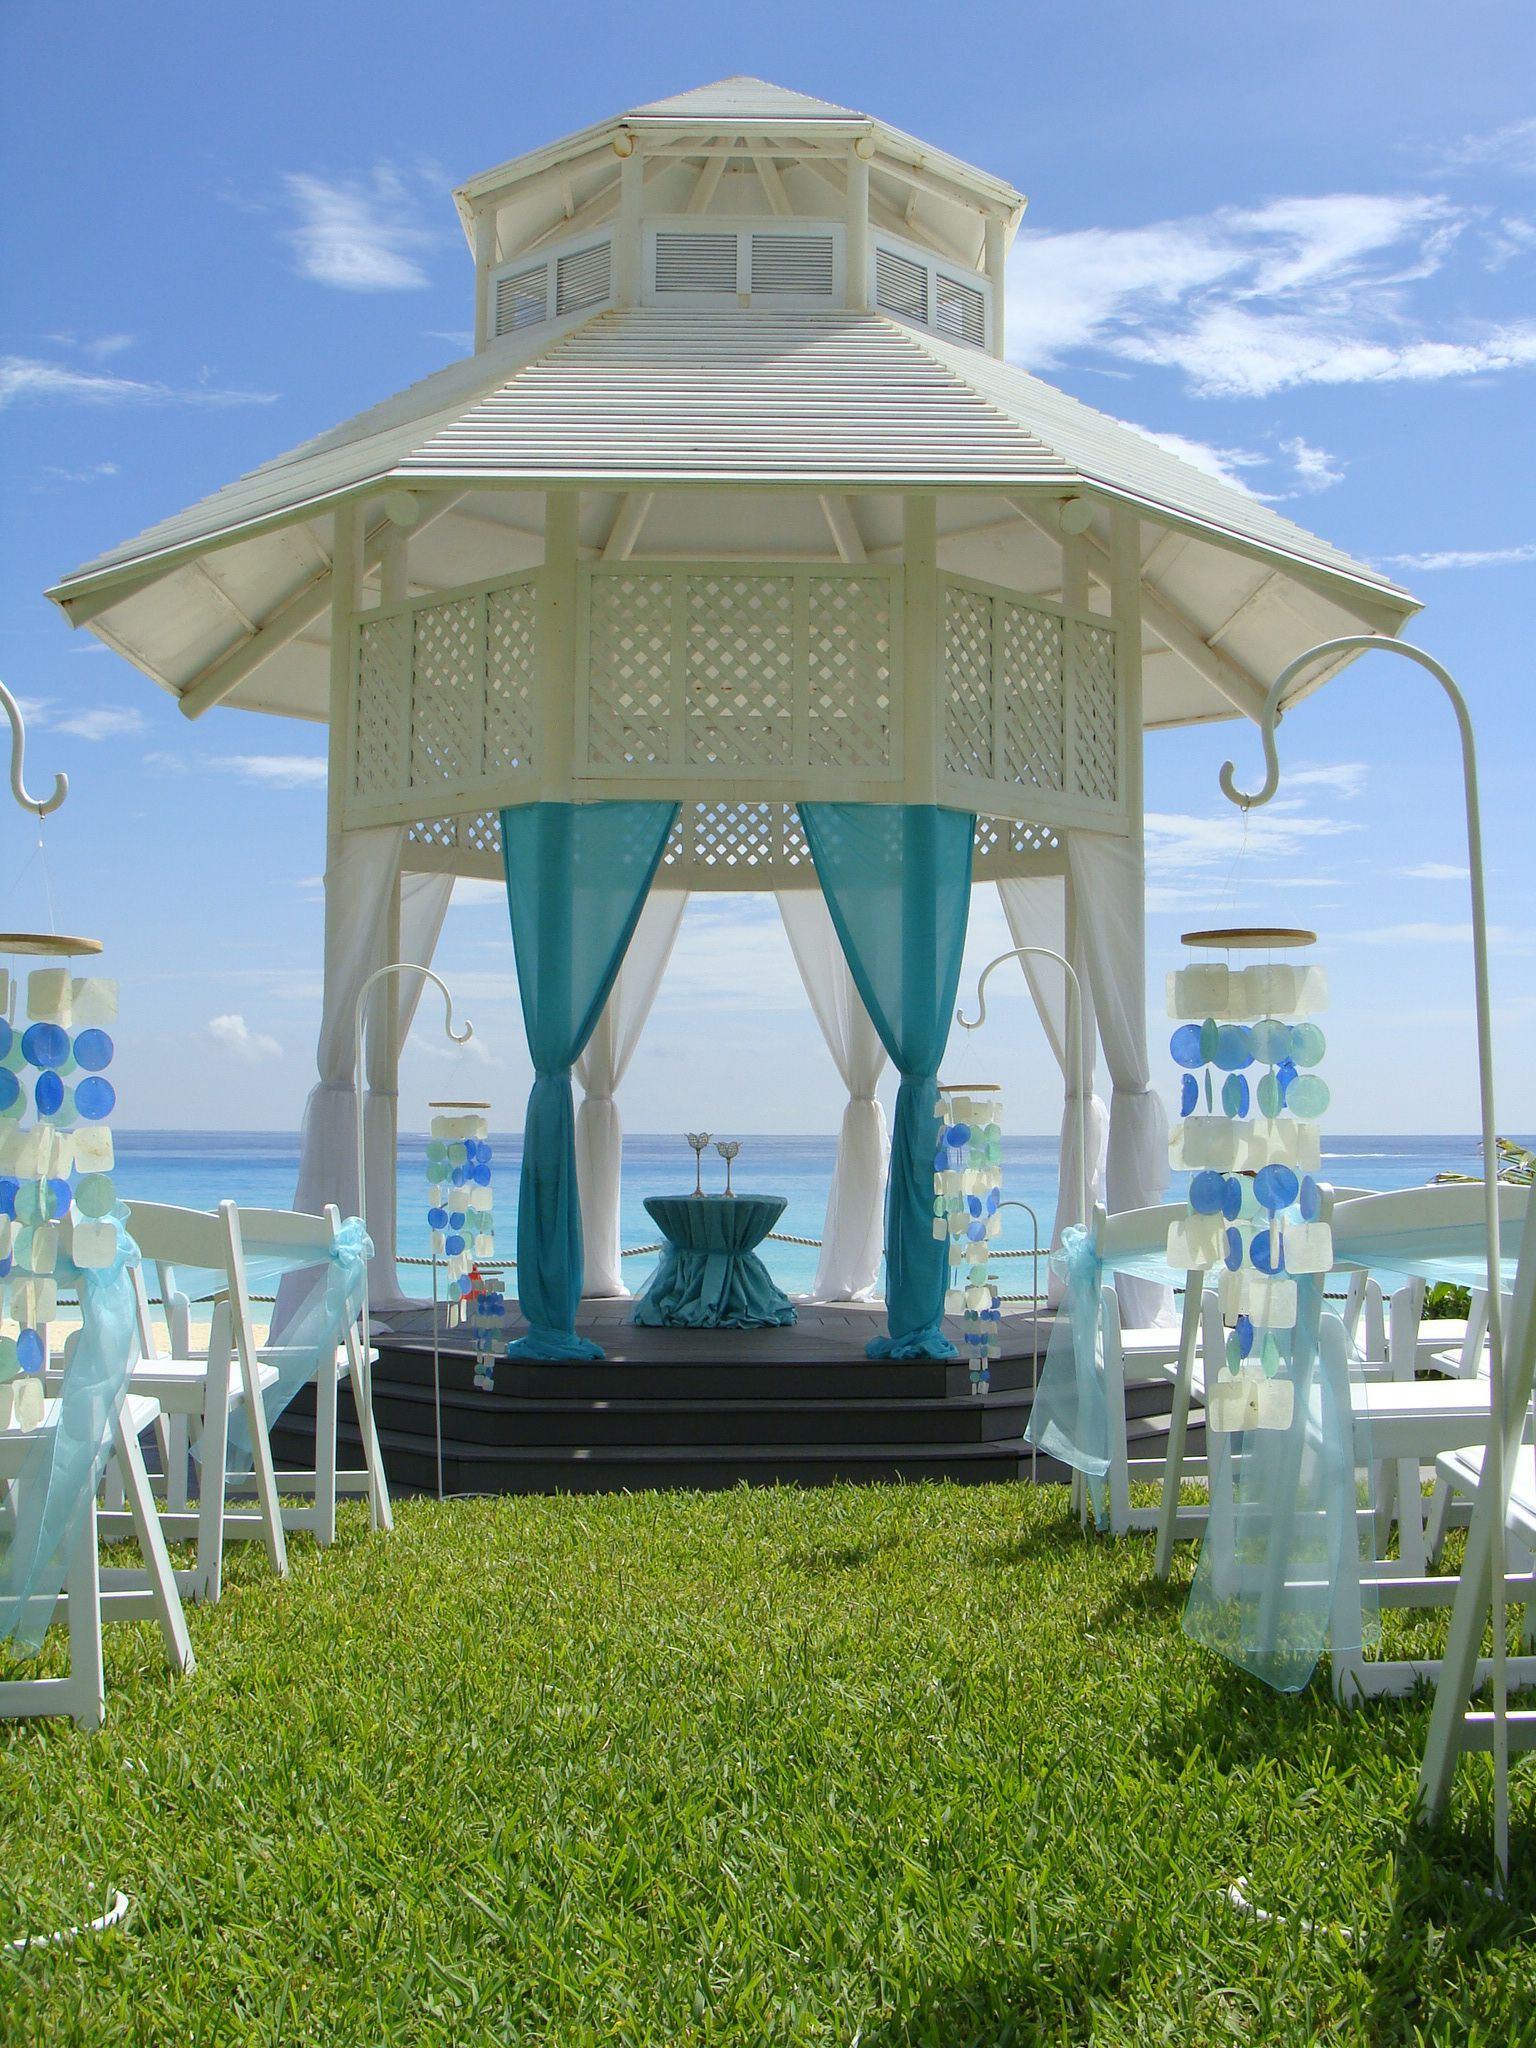 Paradisus Cancun Resort Wedding Gazebo Inspired Voyages Www Inspiredvoyage Email Us At Jenifer Let Design Your All Inclusive